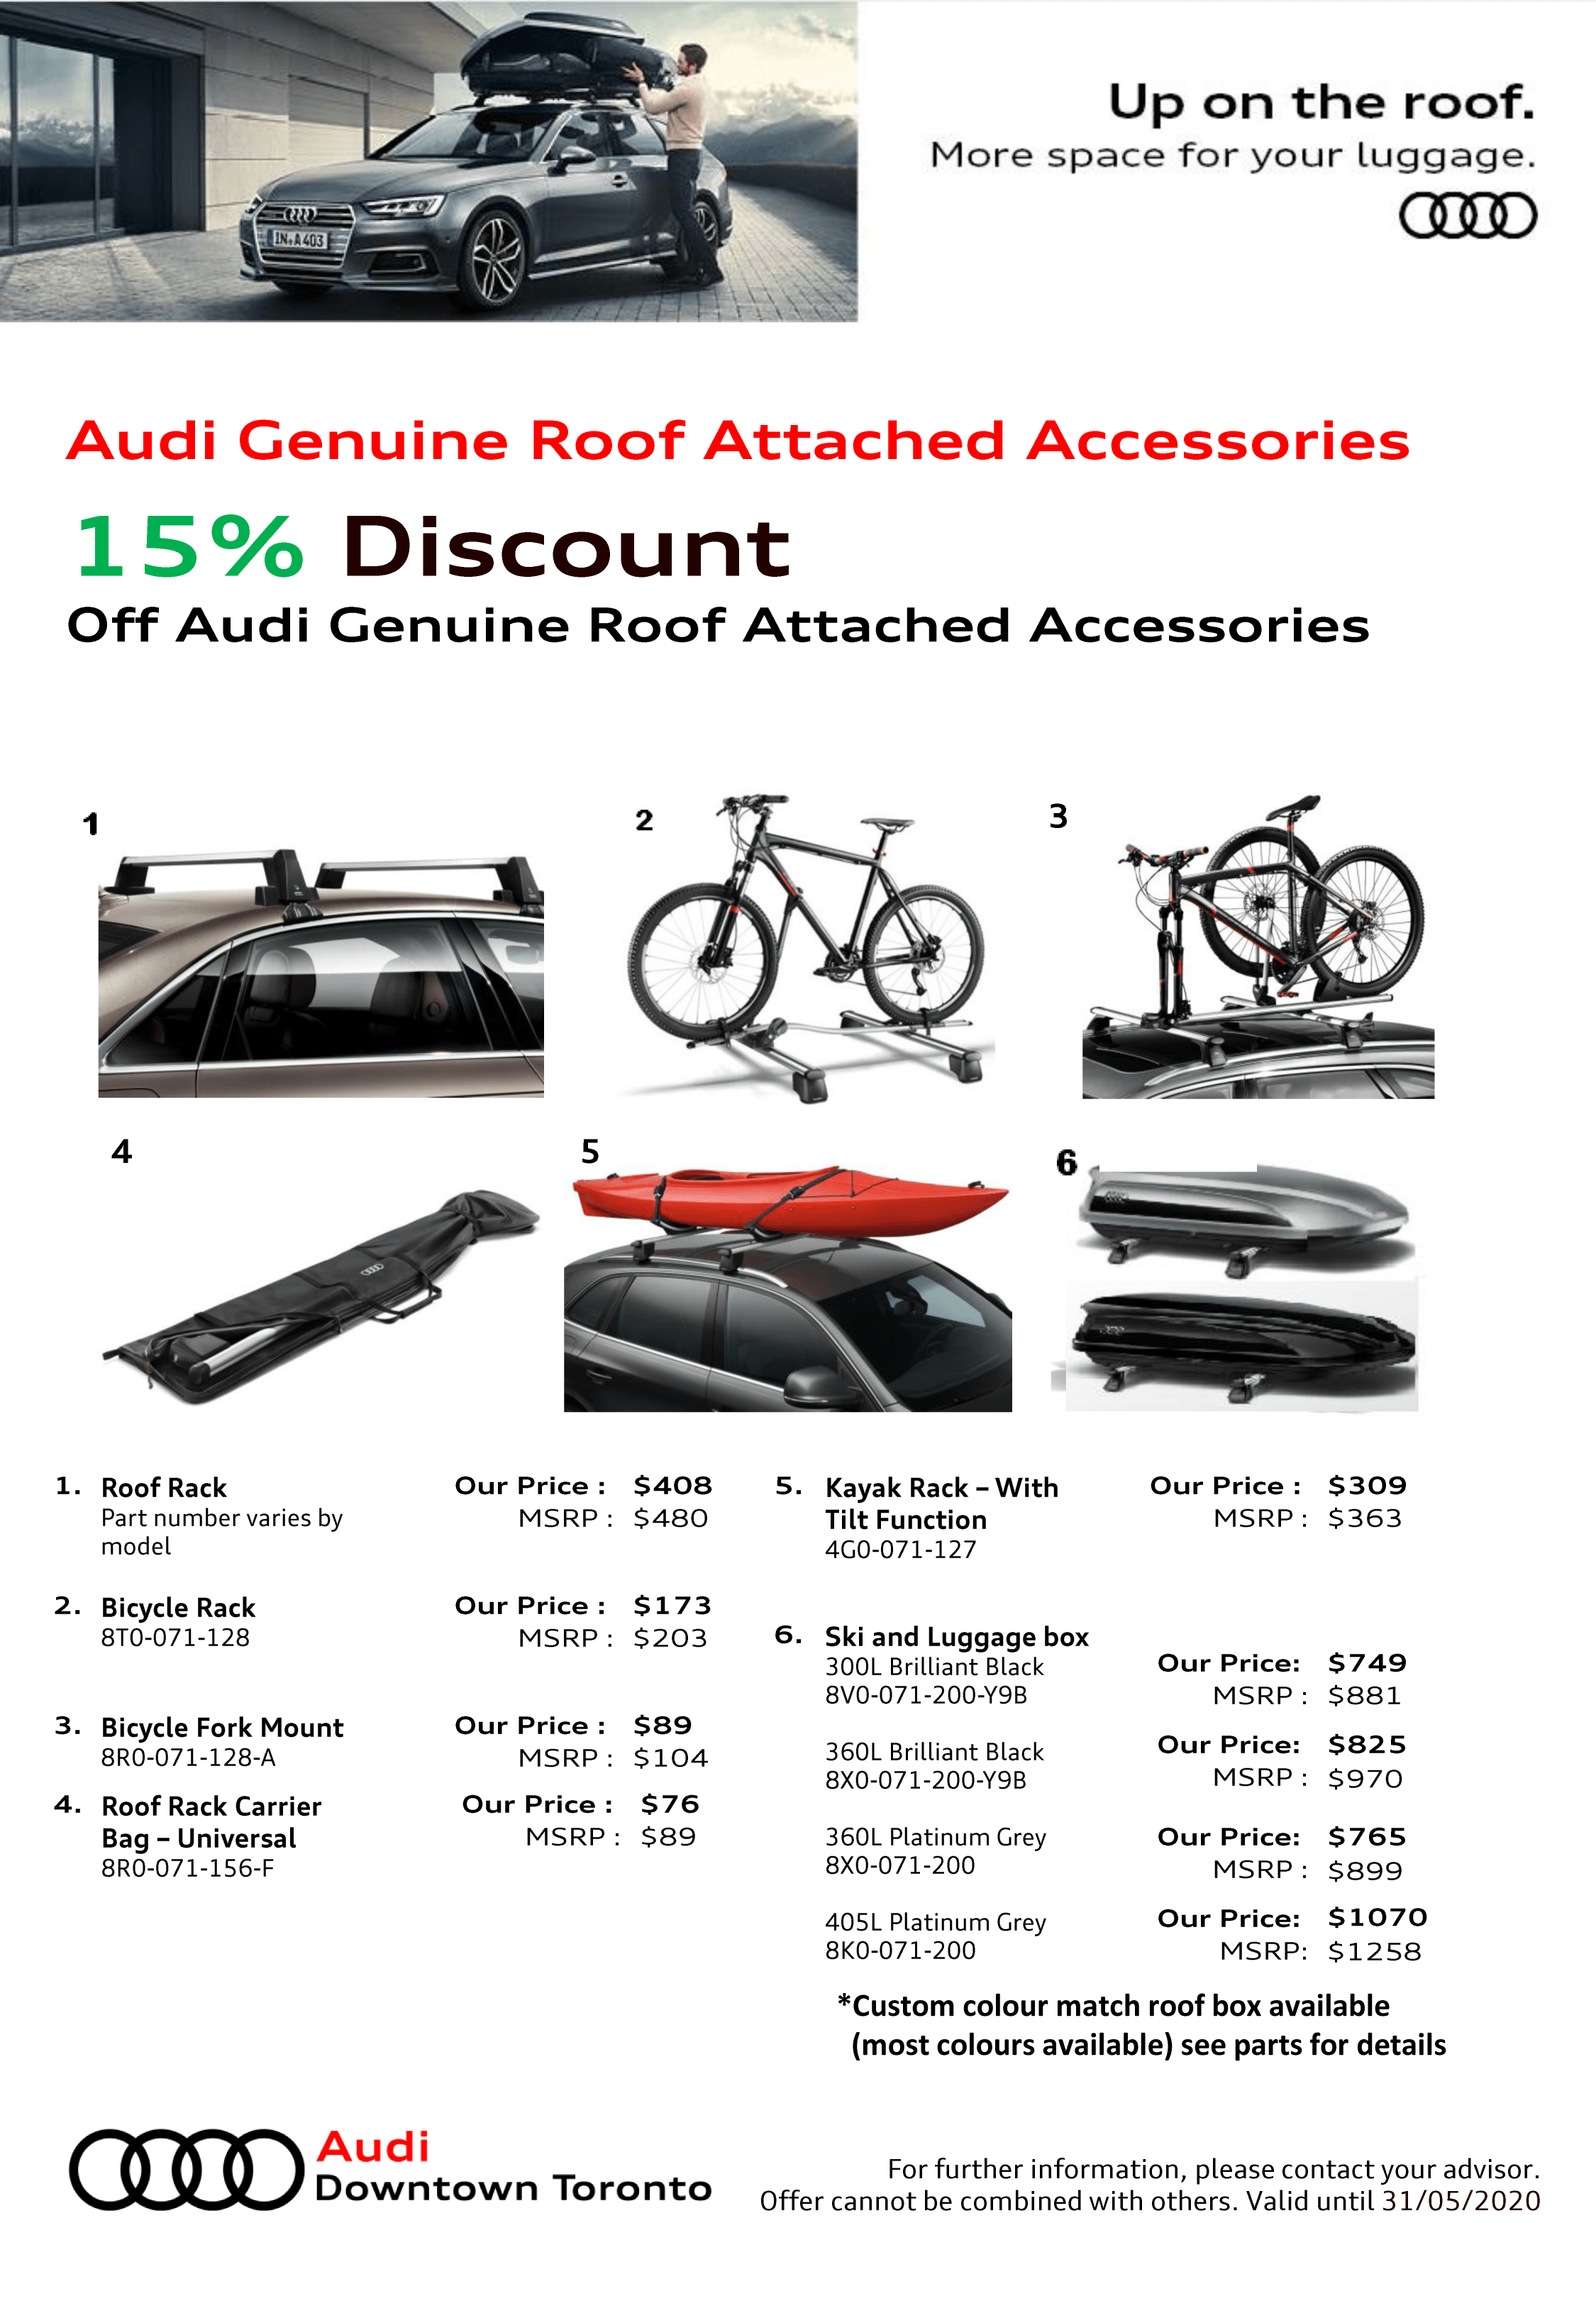 Audi Genuine Roof Attached Accessories